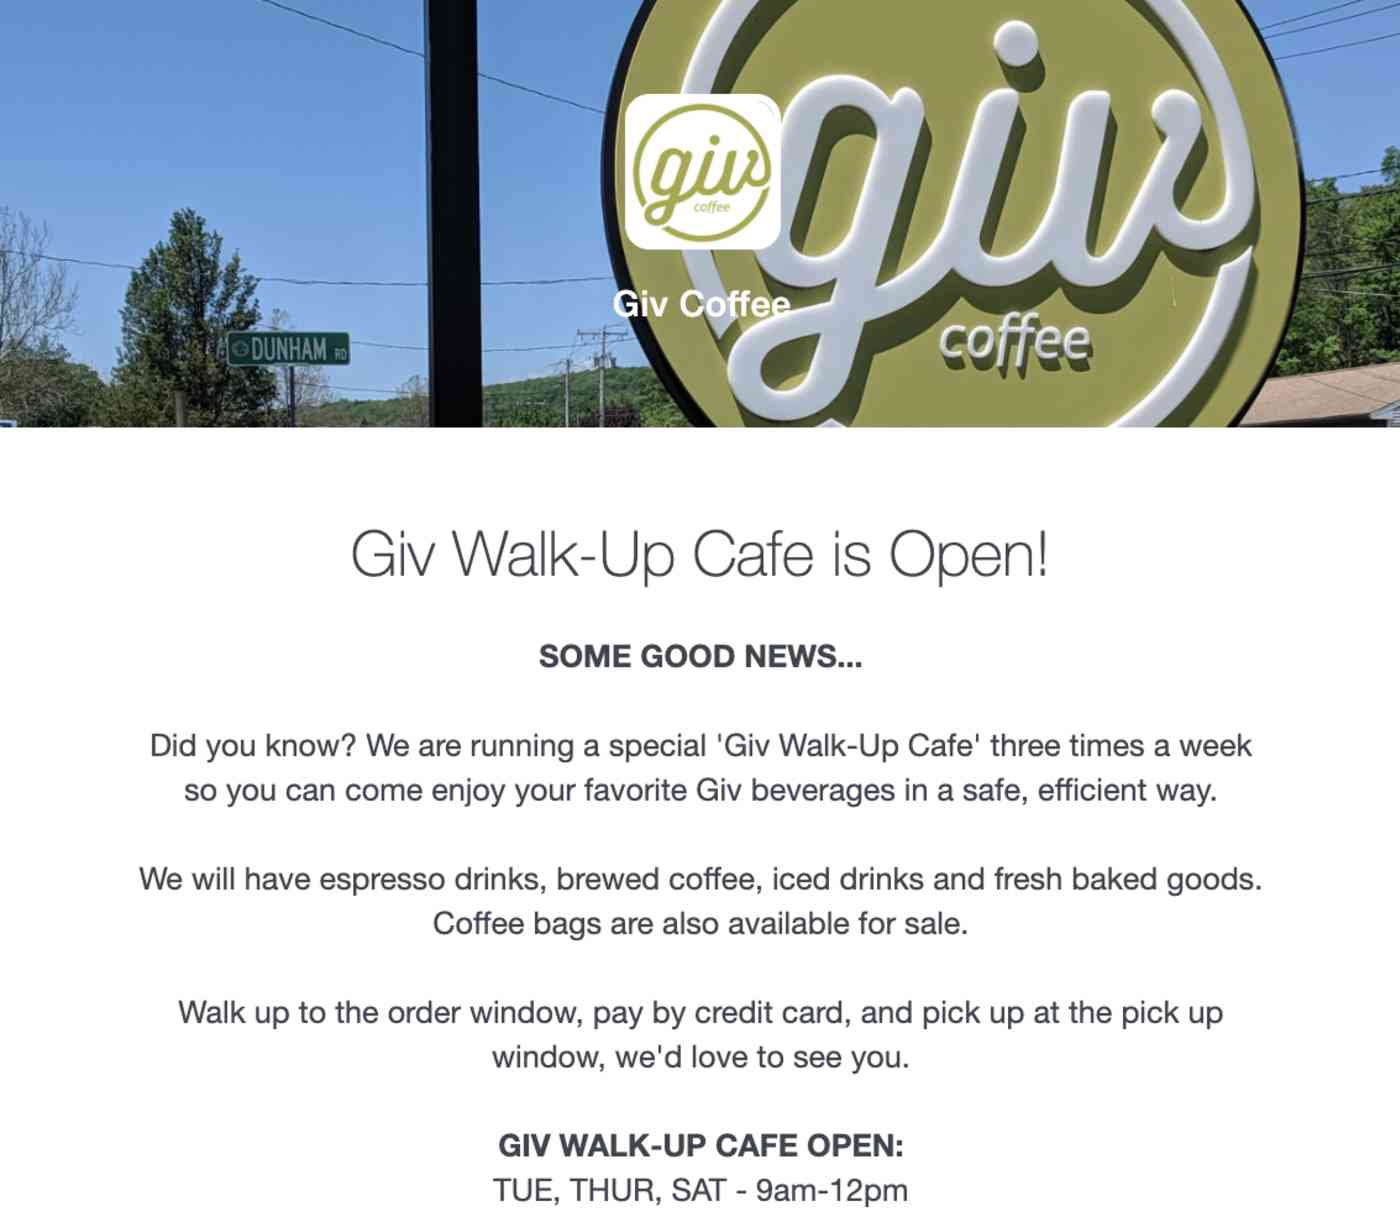 Giv Coffee Shop email telling me they